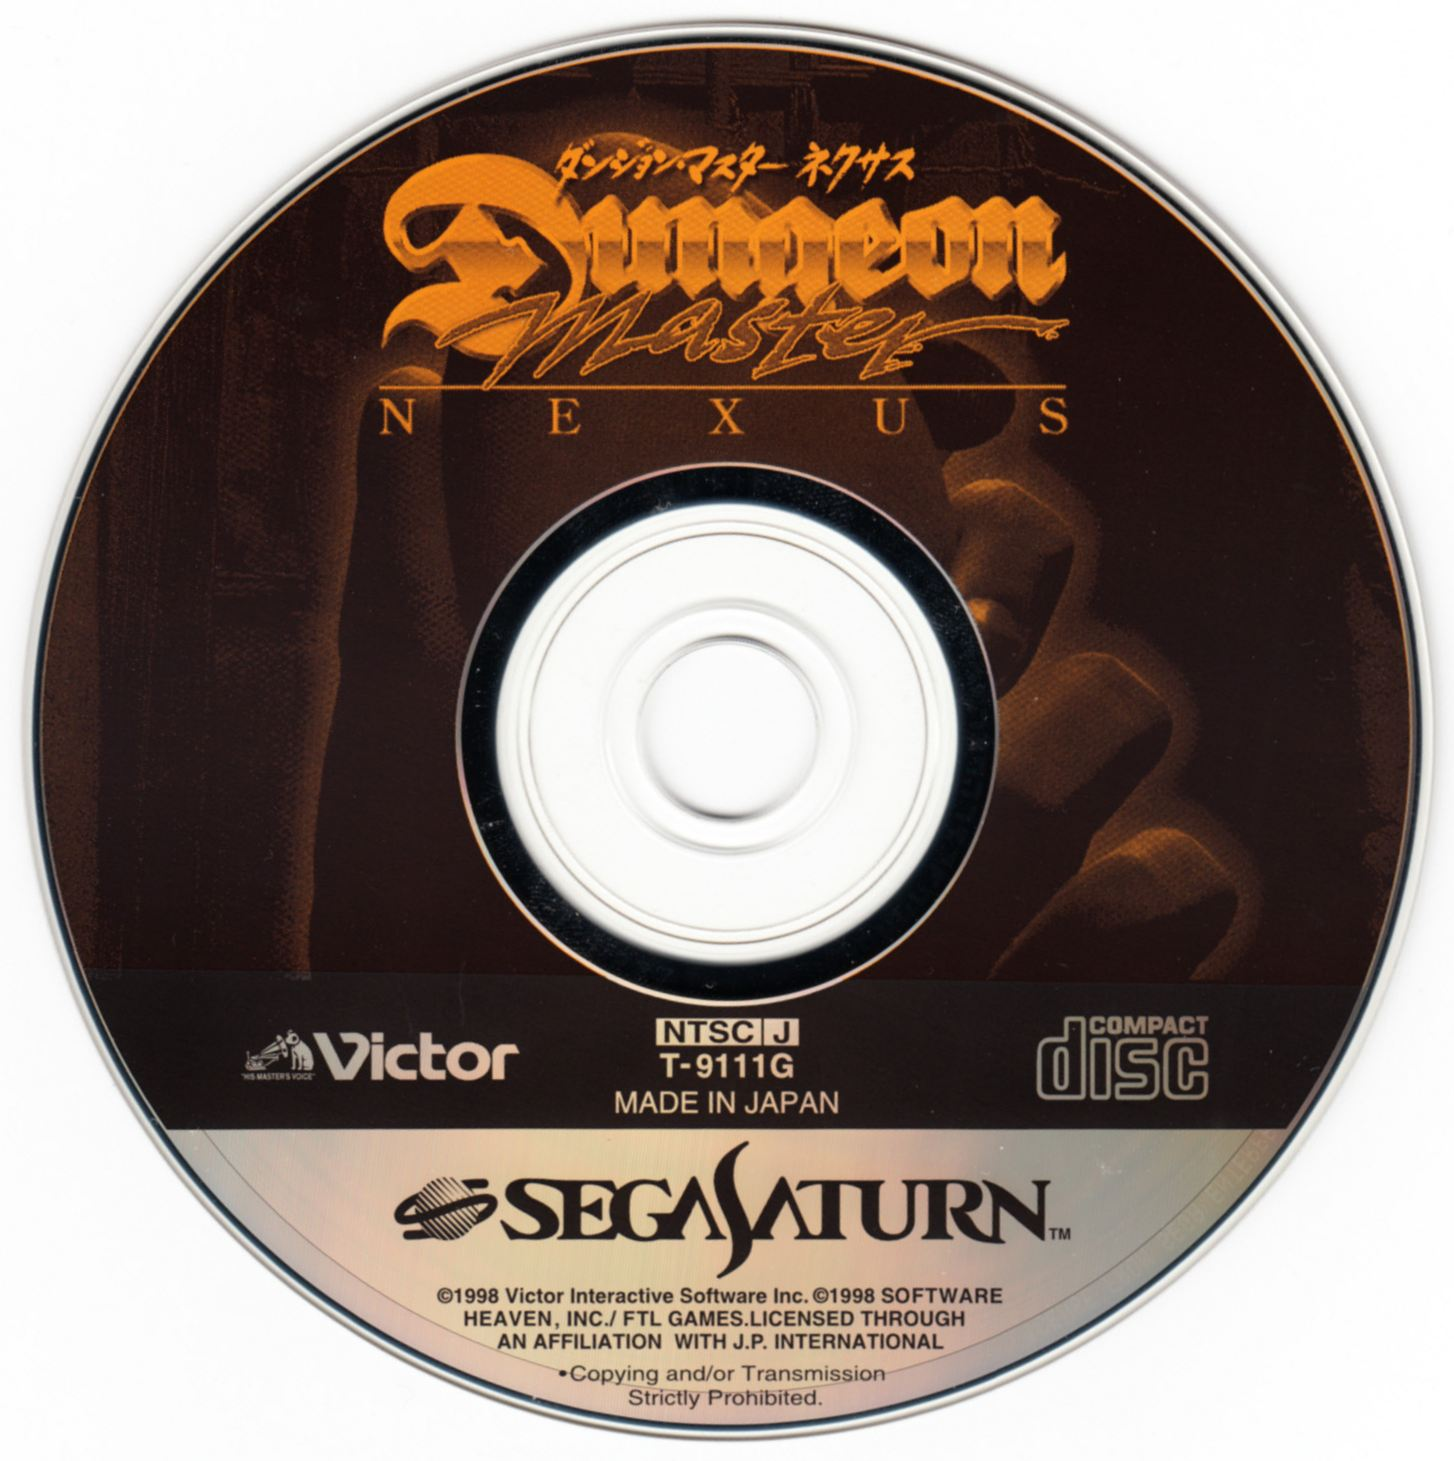 Game - Dungeon Master Nexus - JP - Sega Saturn - Compact Disc - Front - Scan